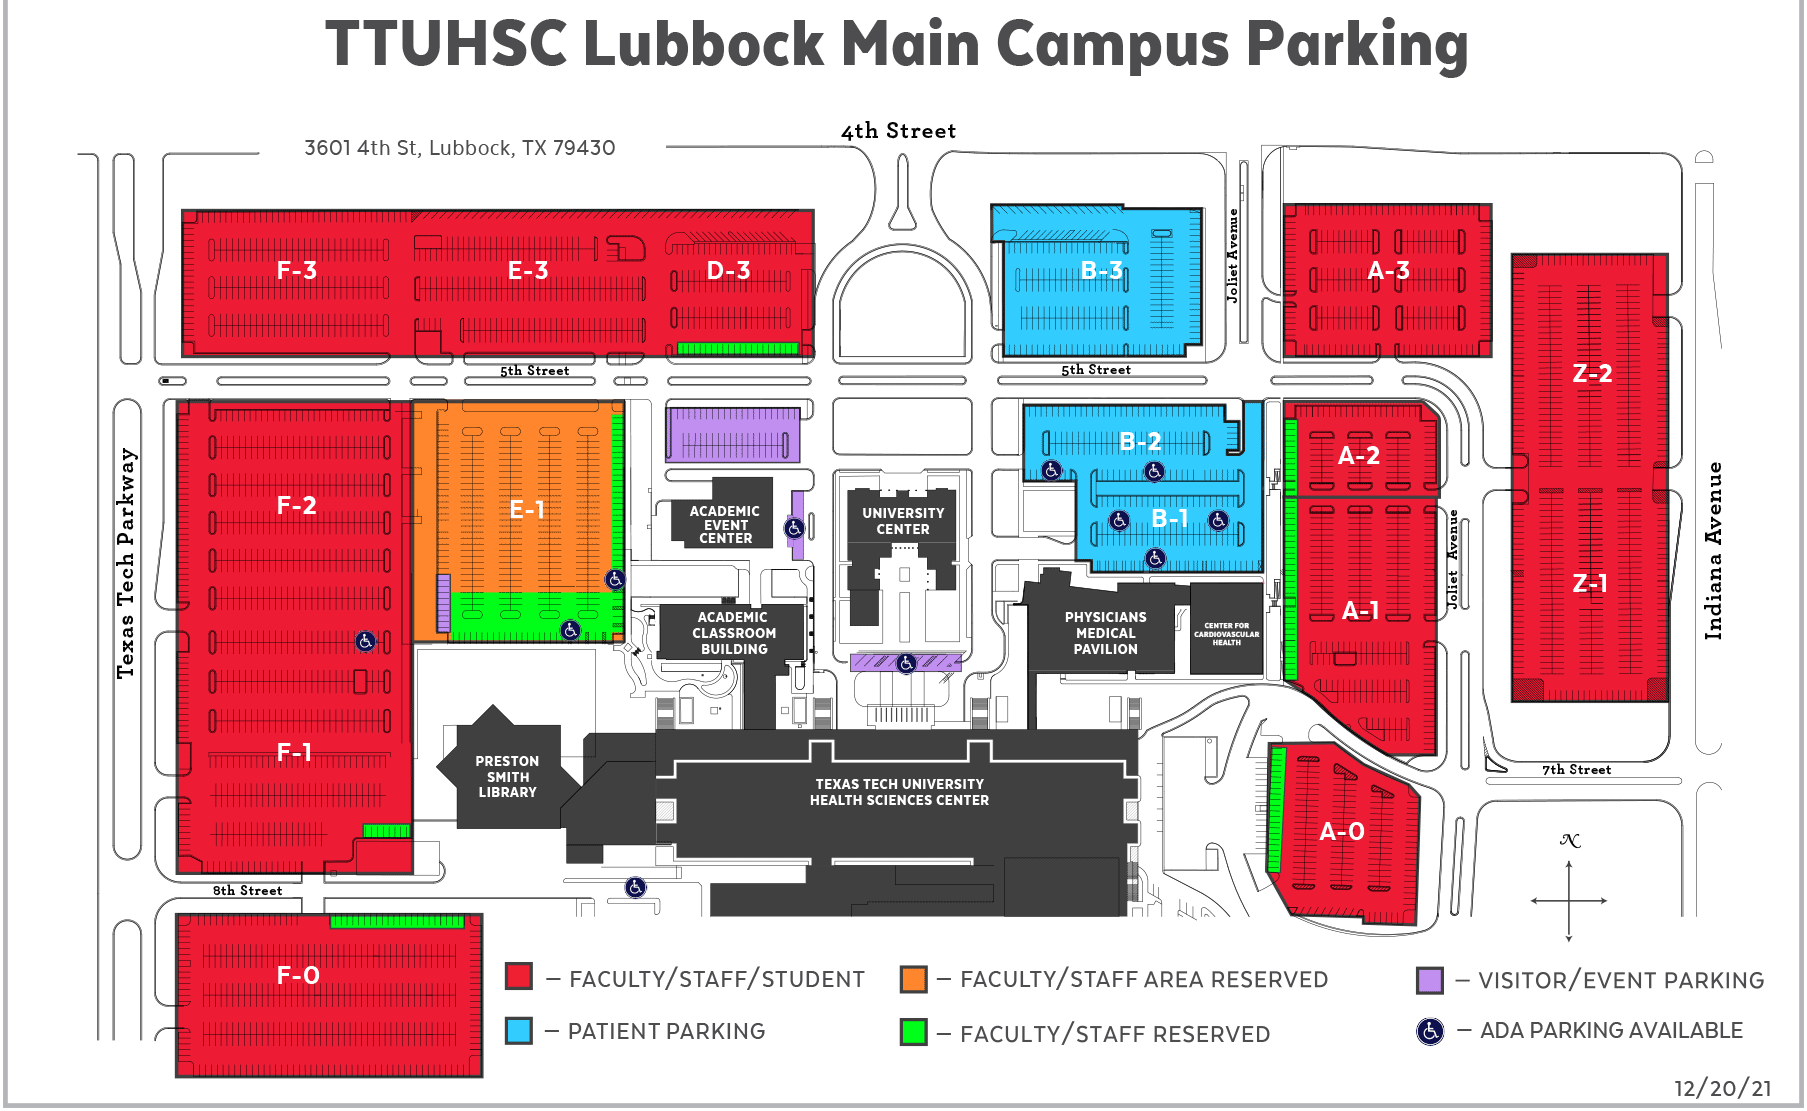 Parking Maps | Parking Services | Finance | TTUHSC